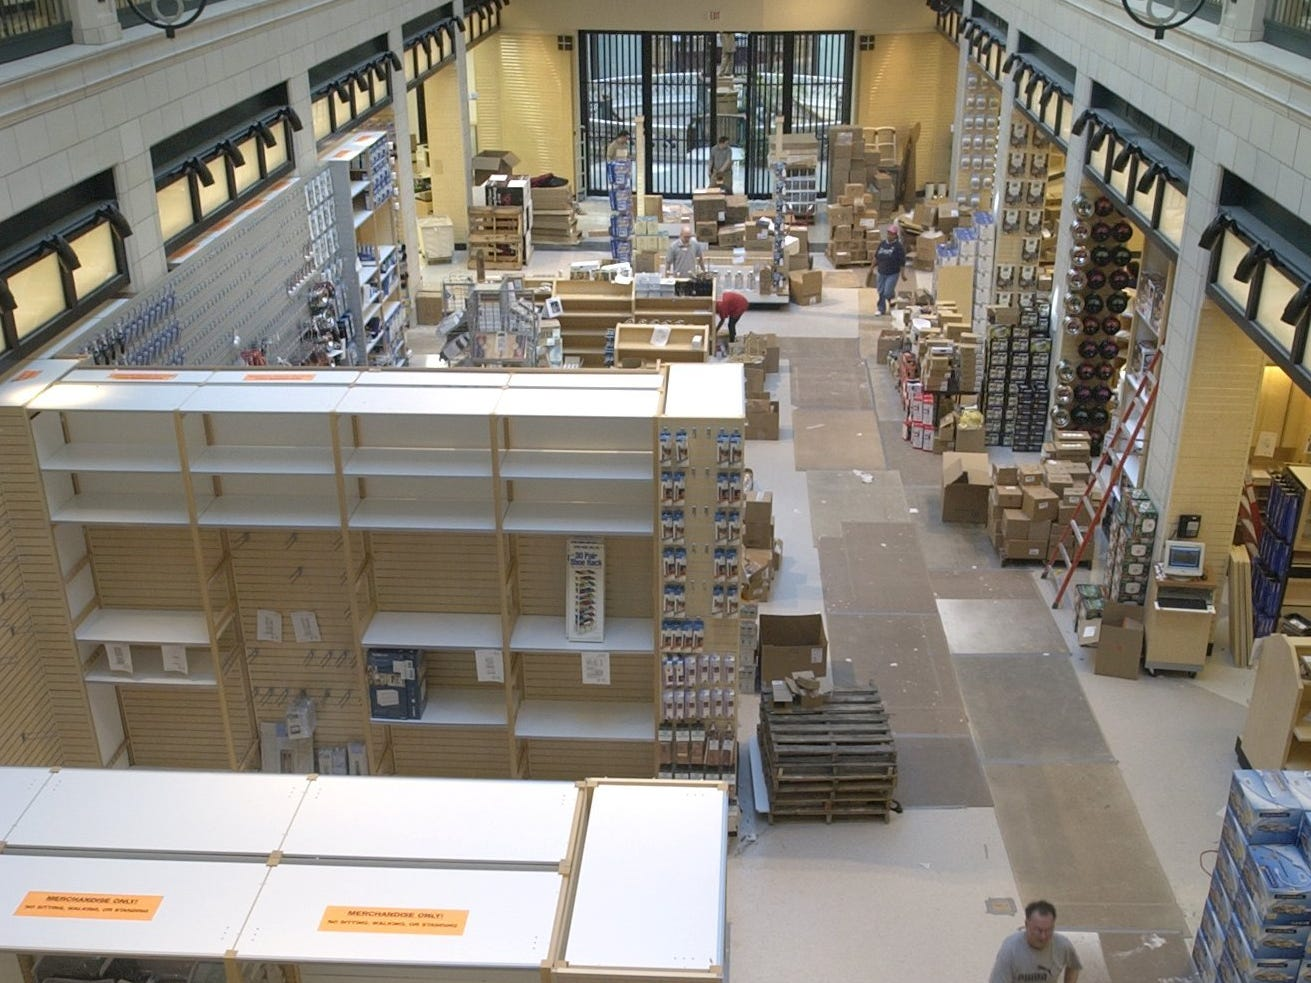 Workers set up shelves and displays for the new Linen n' Things store in the Grand Avenue Mall Wednesday, March 10, 2004.